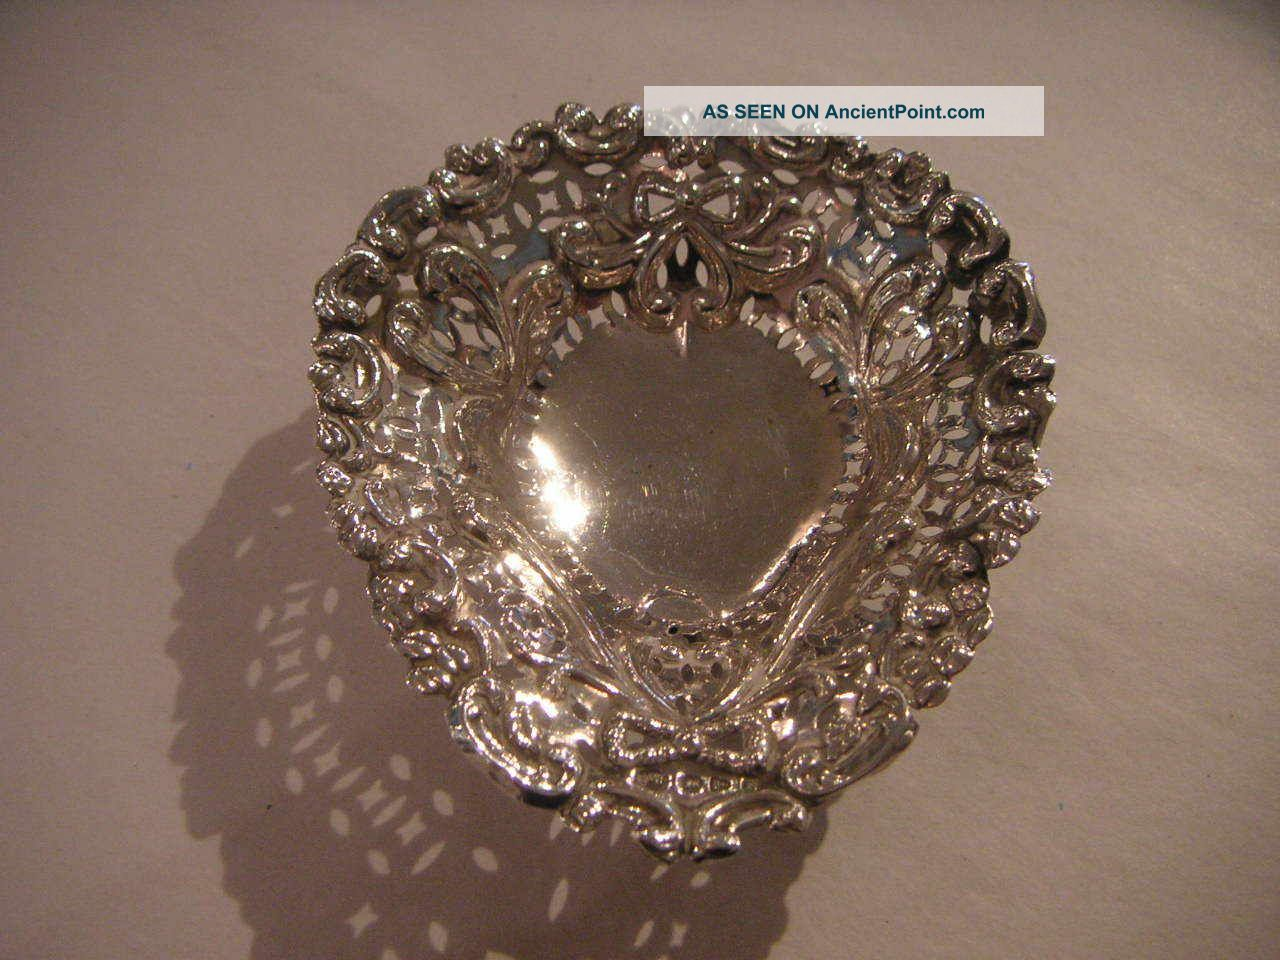 Antique Silver Ring Dish With Swag & Bow Decoration 1896 Dishes & Coasters photo